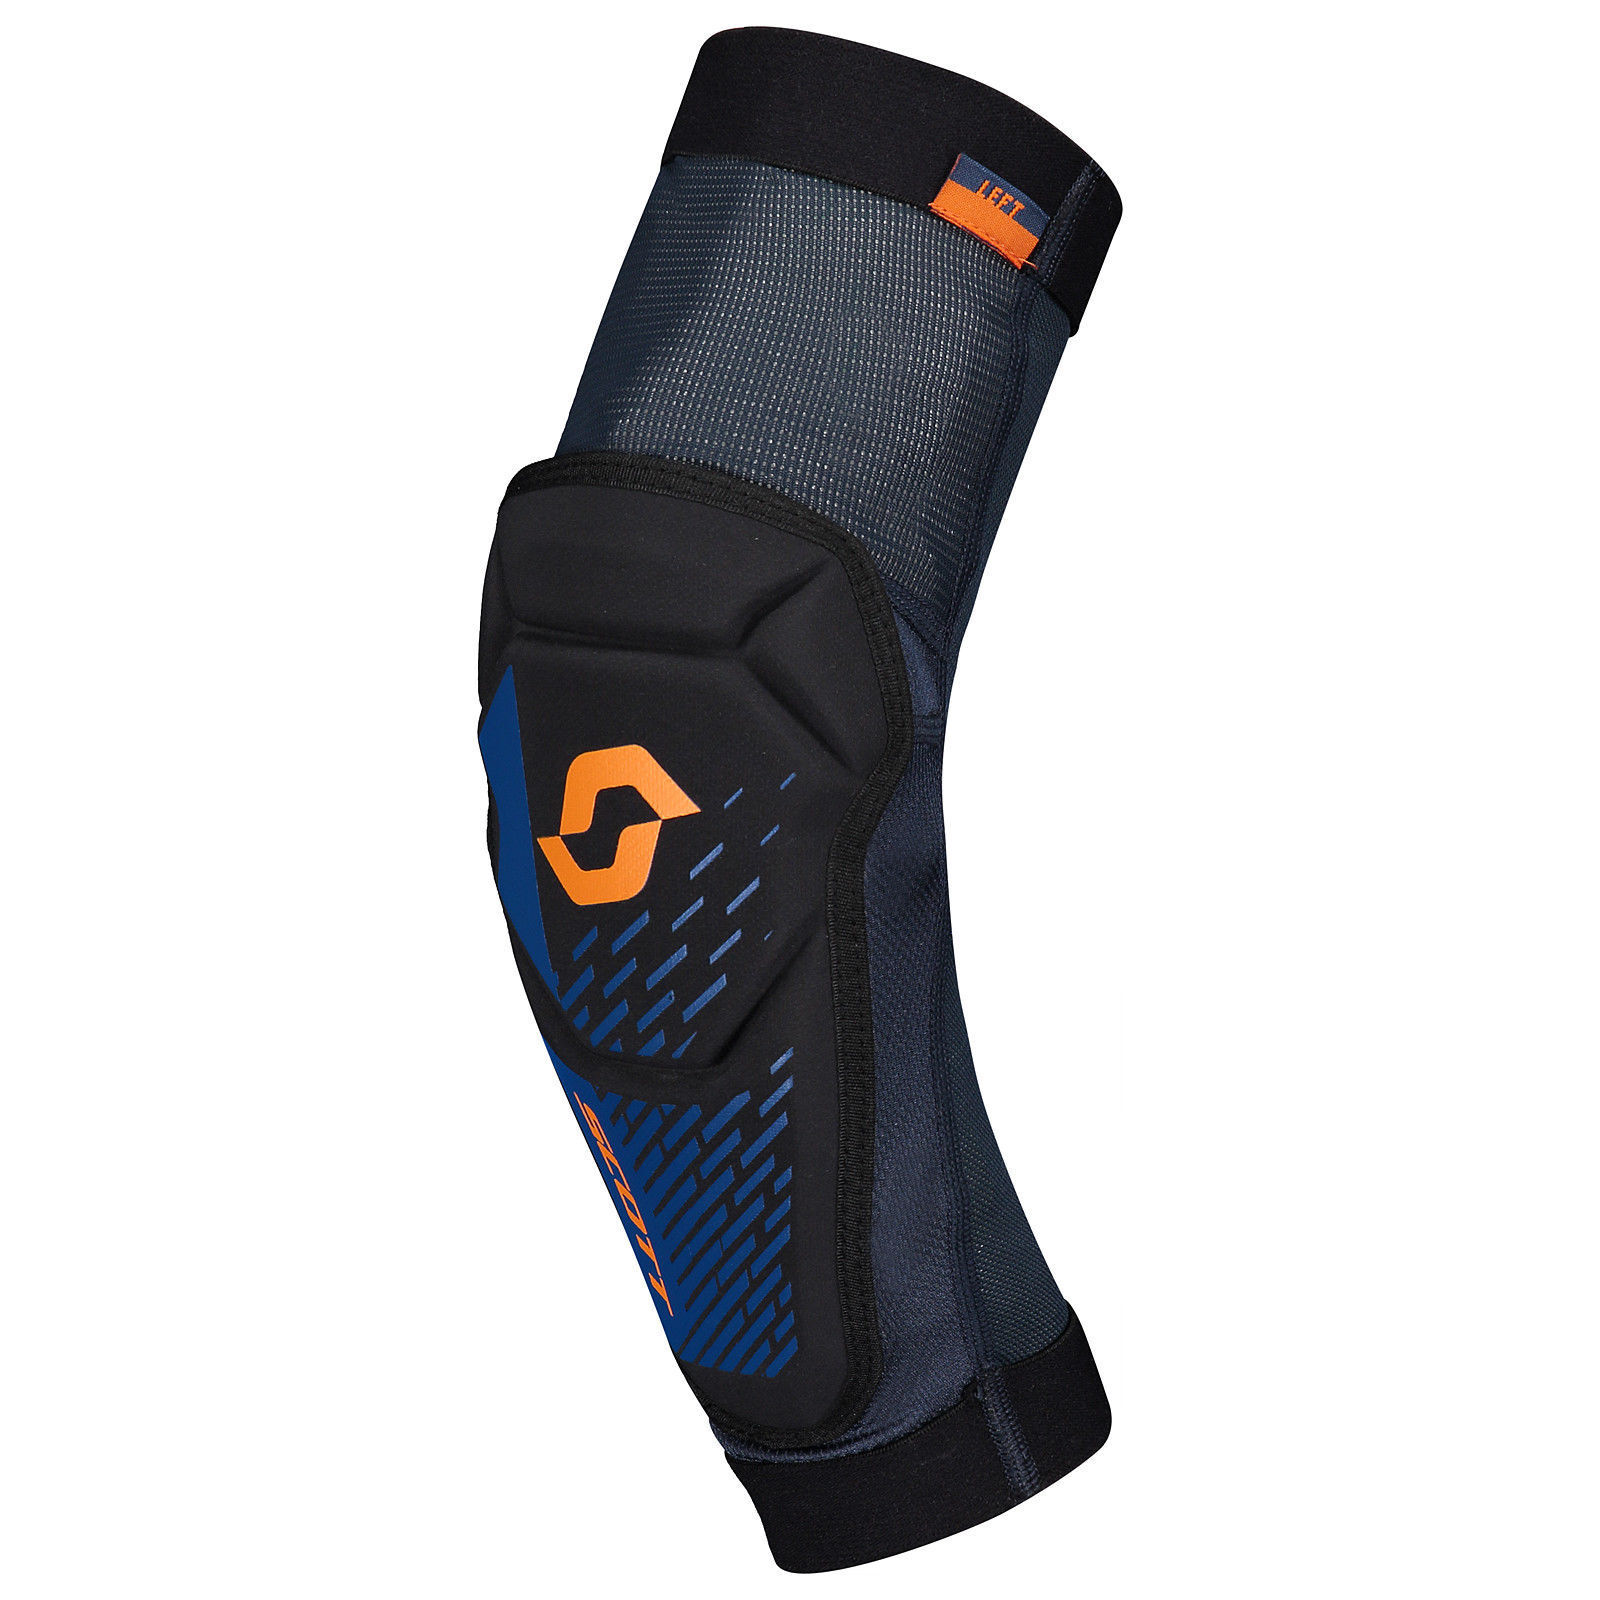 GOMOTIERE SCOTT ELBOW ELBOW SCOTT PADS MISSION colore NERO-BLU NOTTE-ARANCIO 13ad9c